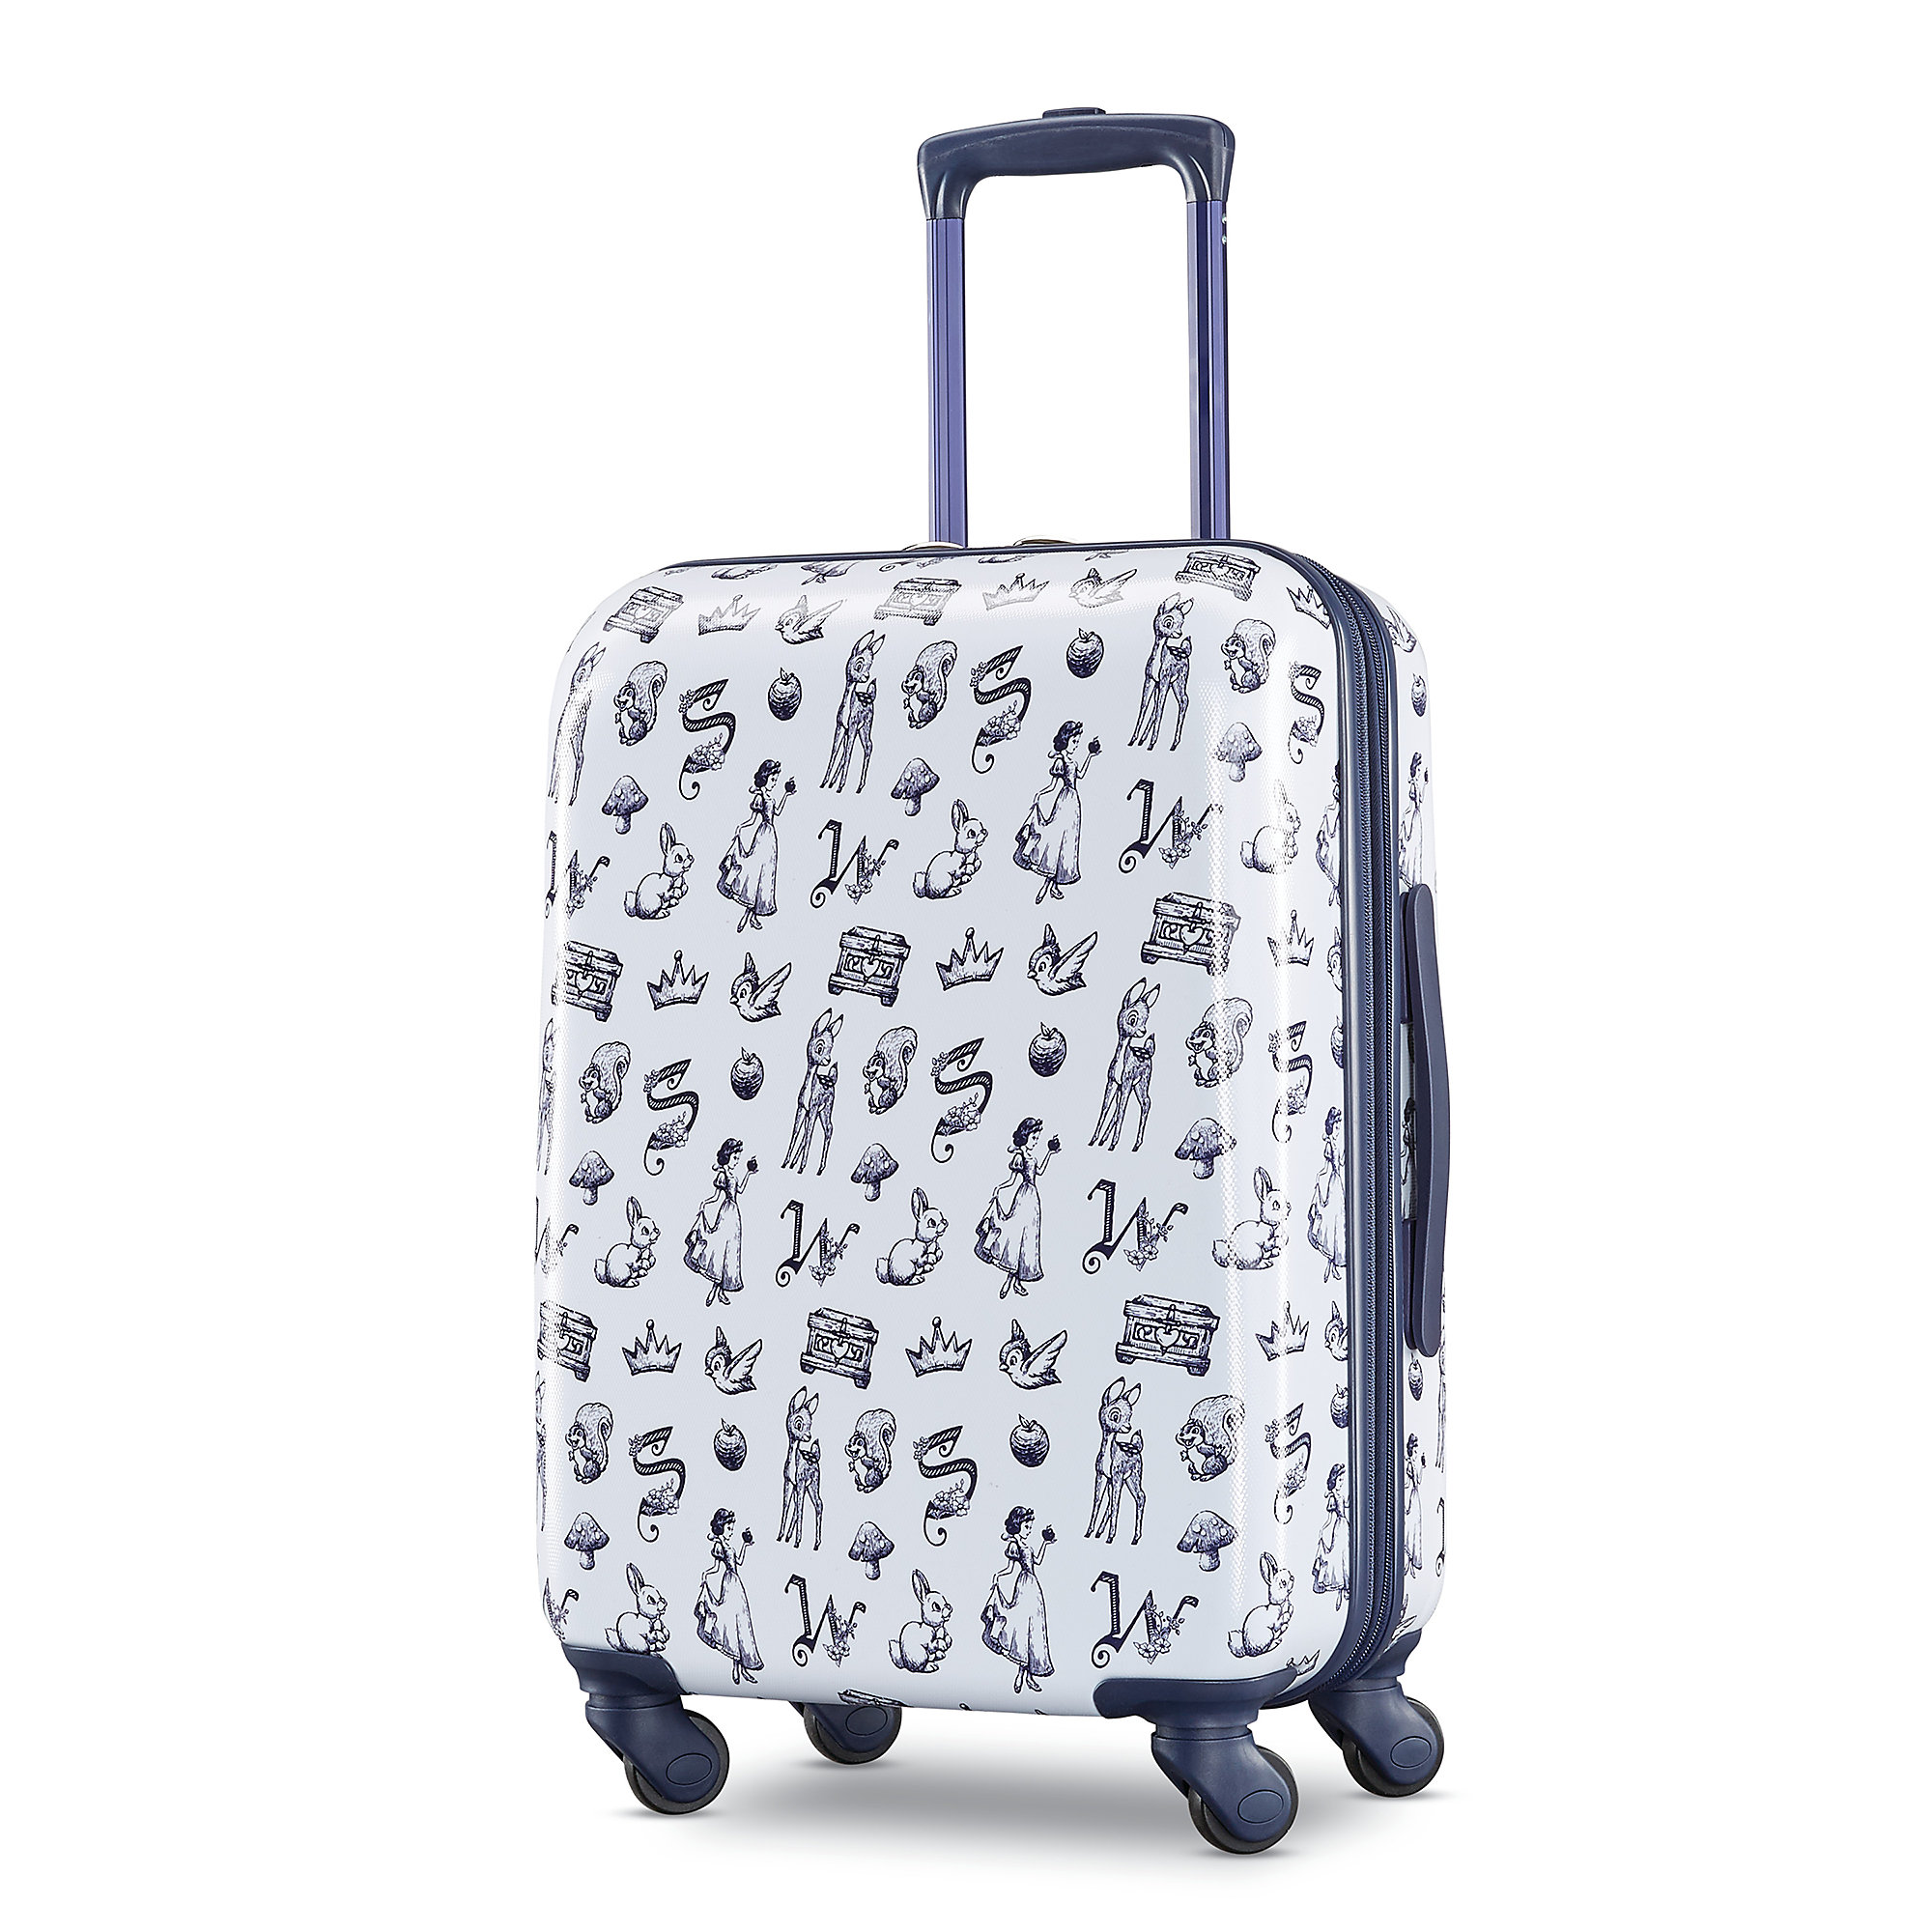 Snow White Rolling Luggage by American Tourister - Small